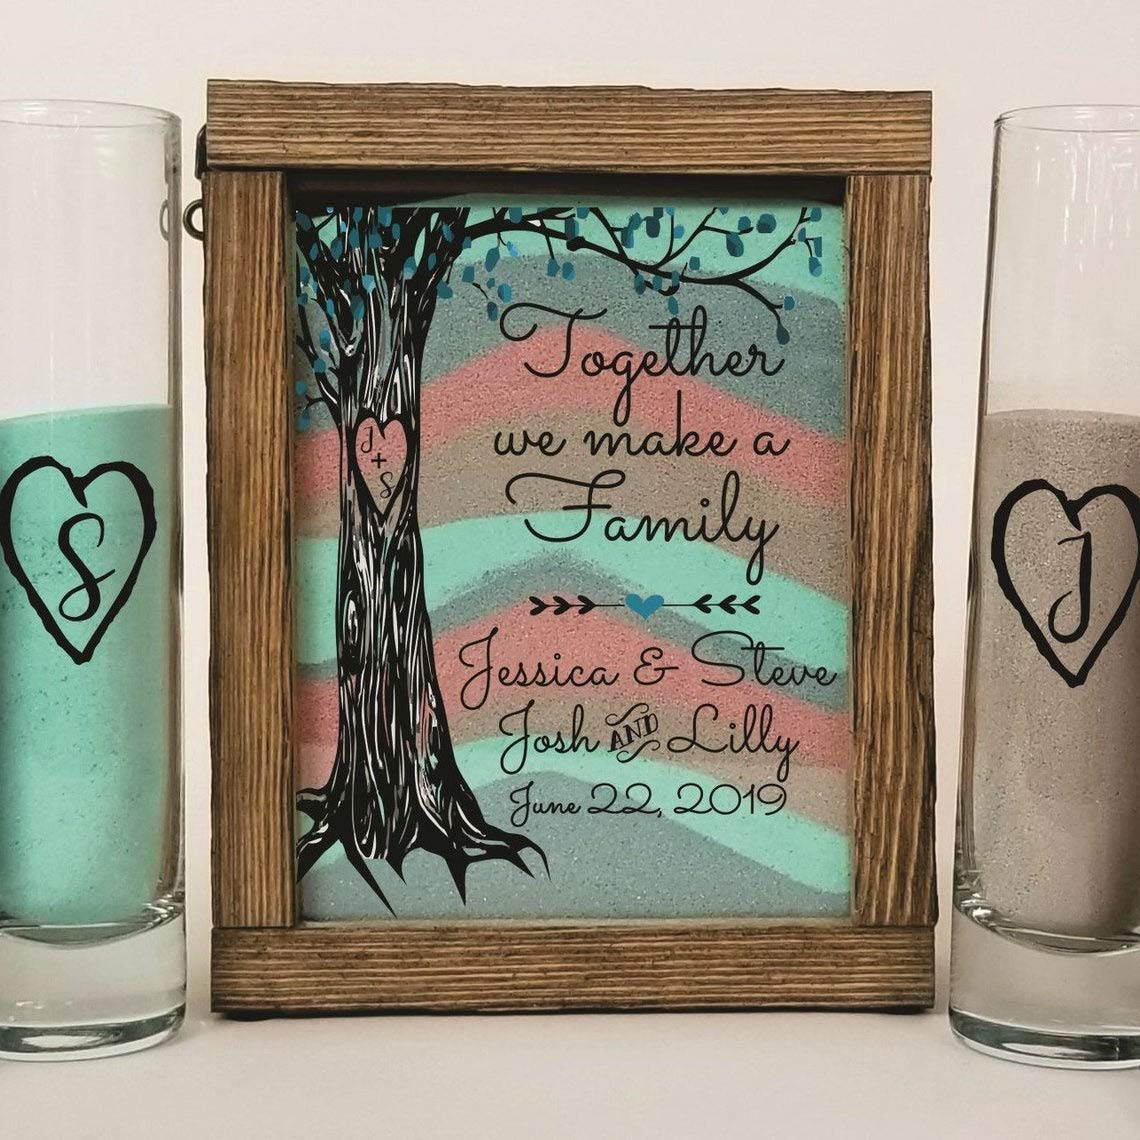 New product type Wedding Candles - Candle Holders sold out Blended Set for Ceremony Sand